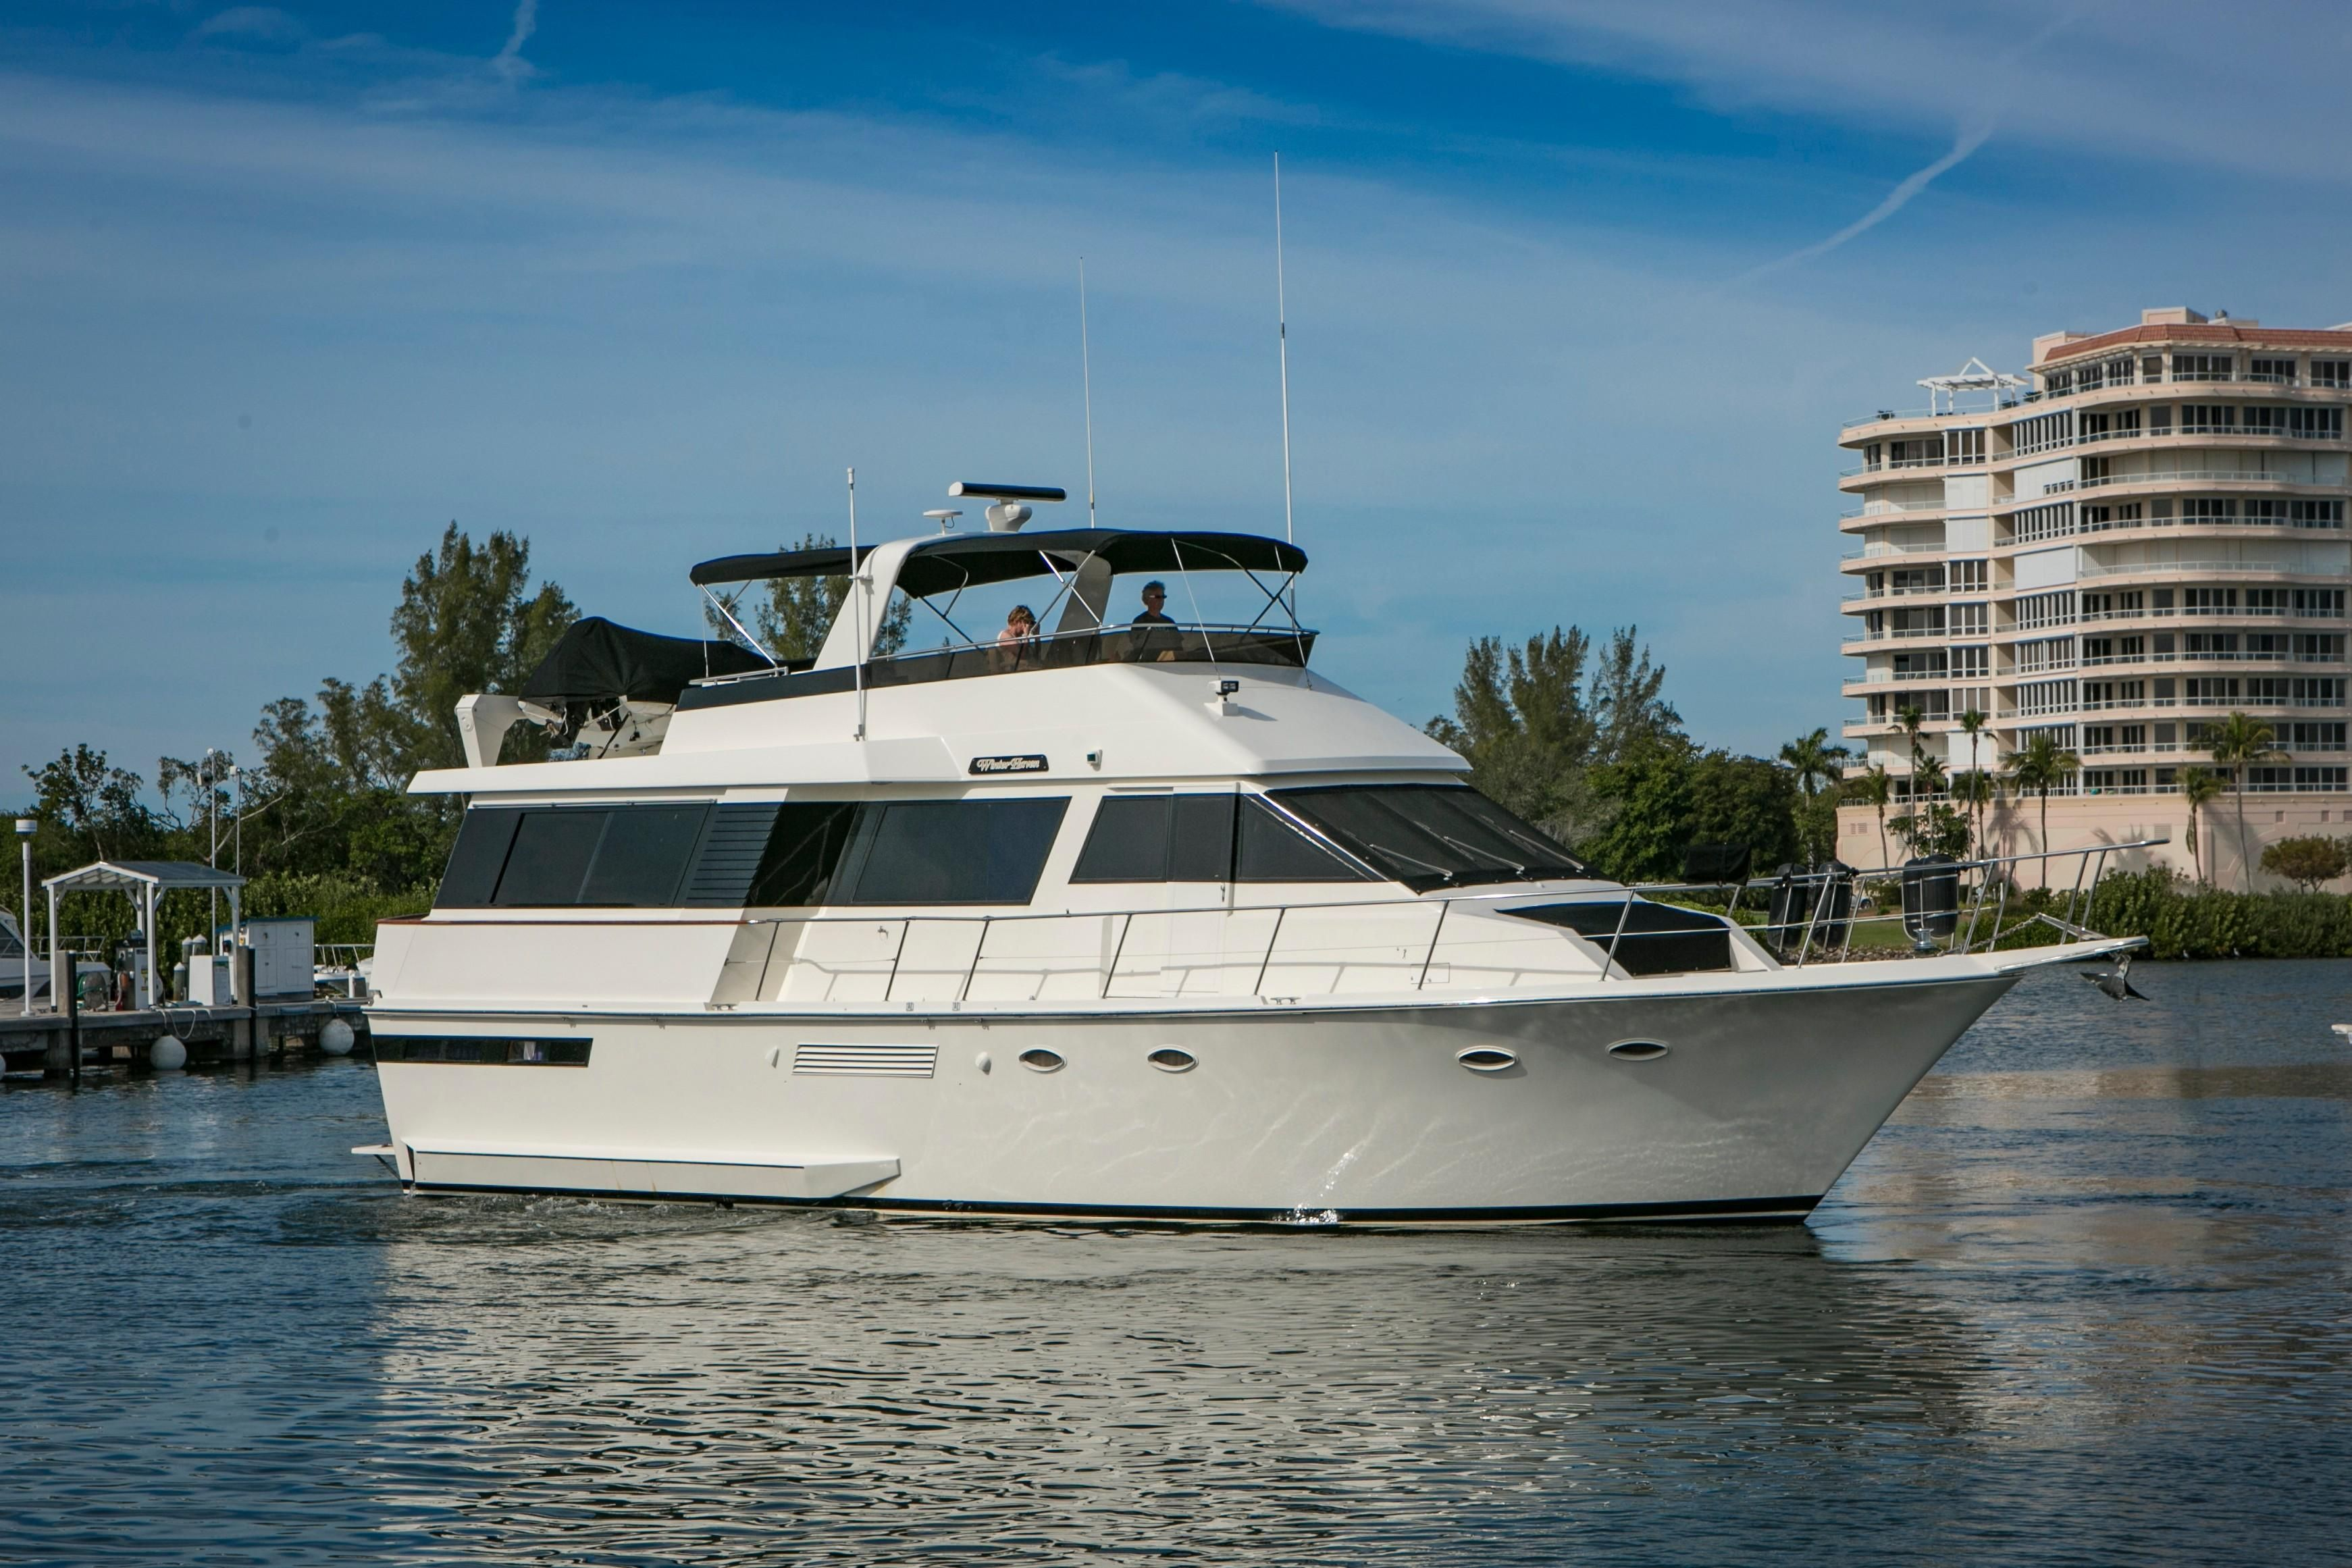 1989 viking 55 motor yacht power boat for sale www for 50 ft motor yachts for sale